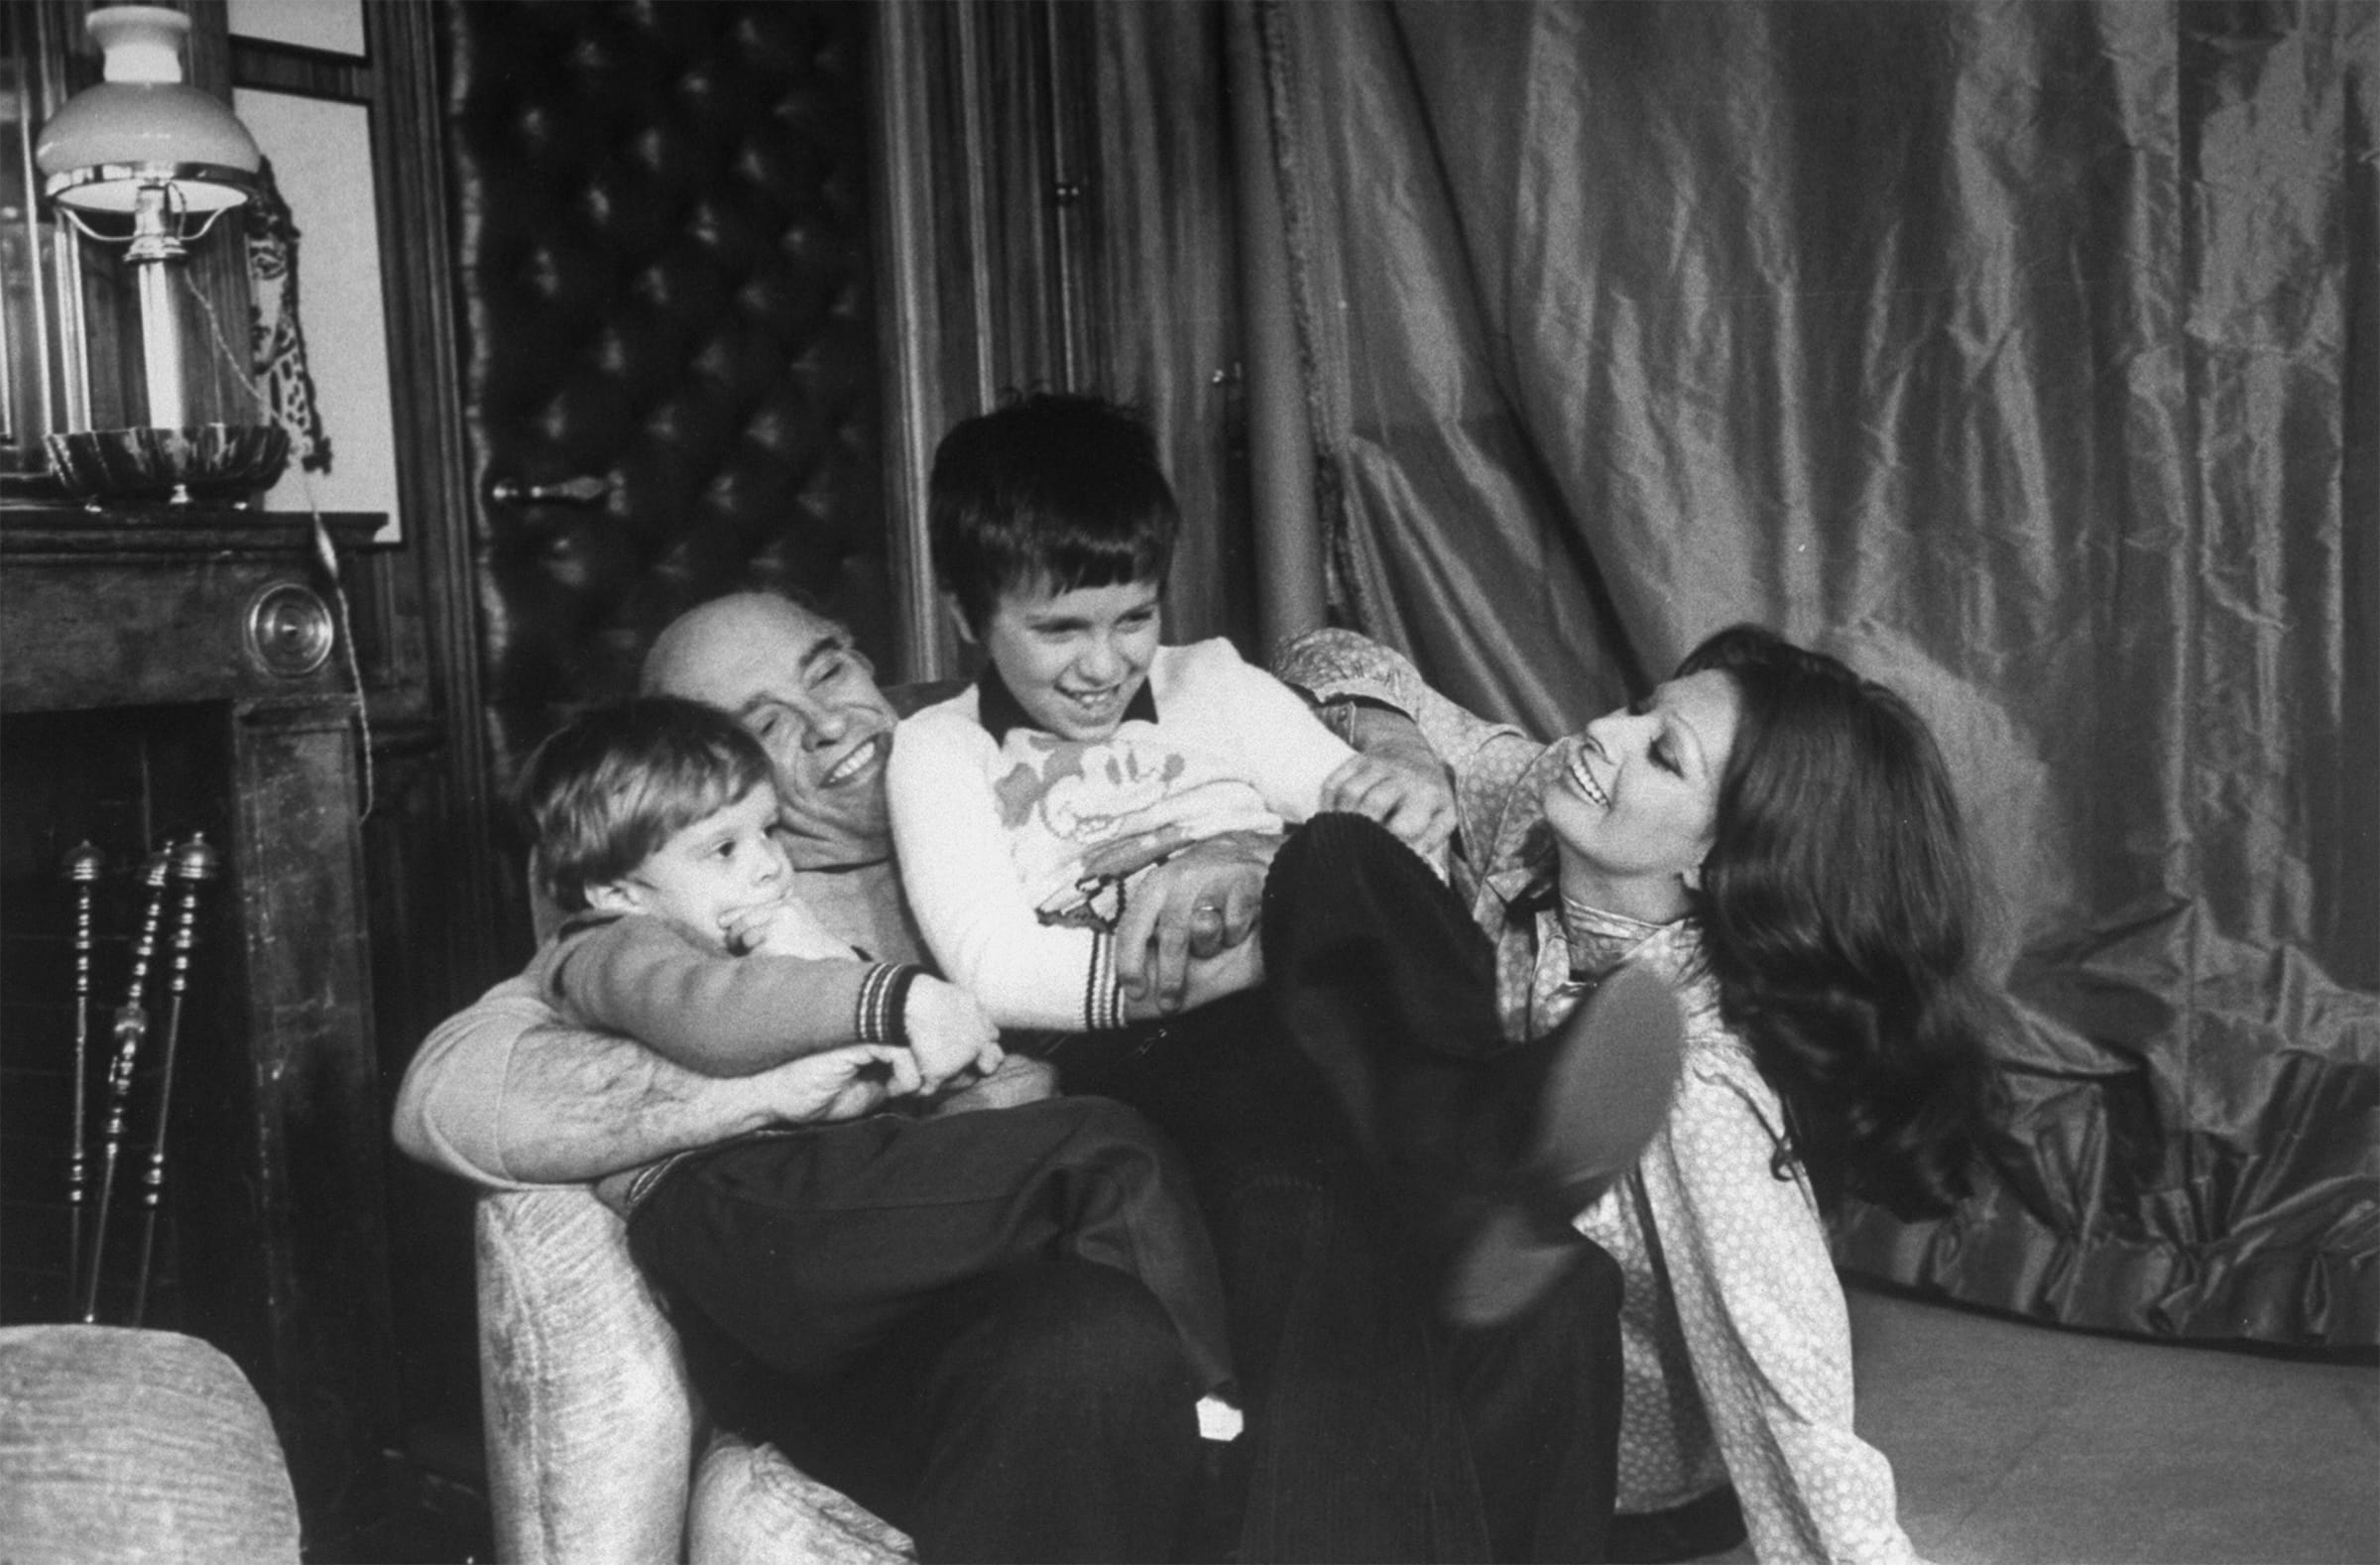 In this playful old photograph, Carlo Ponti sits in an armchair, holding his two young children, while Loren smiles at them from her seat on the floor.